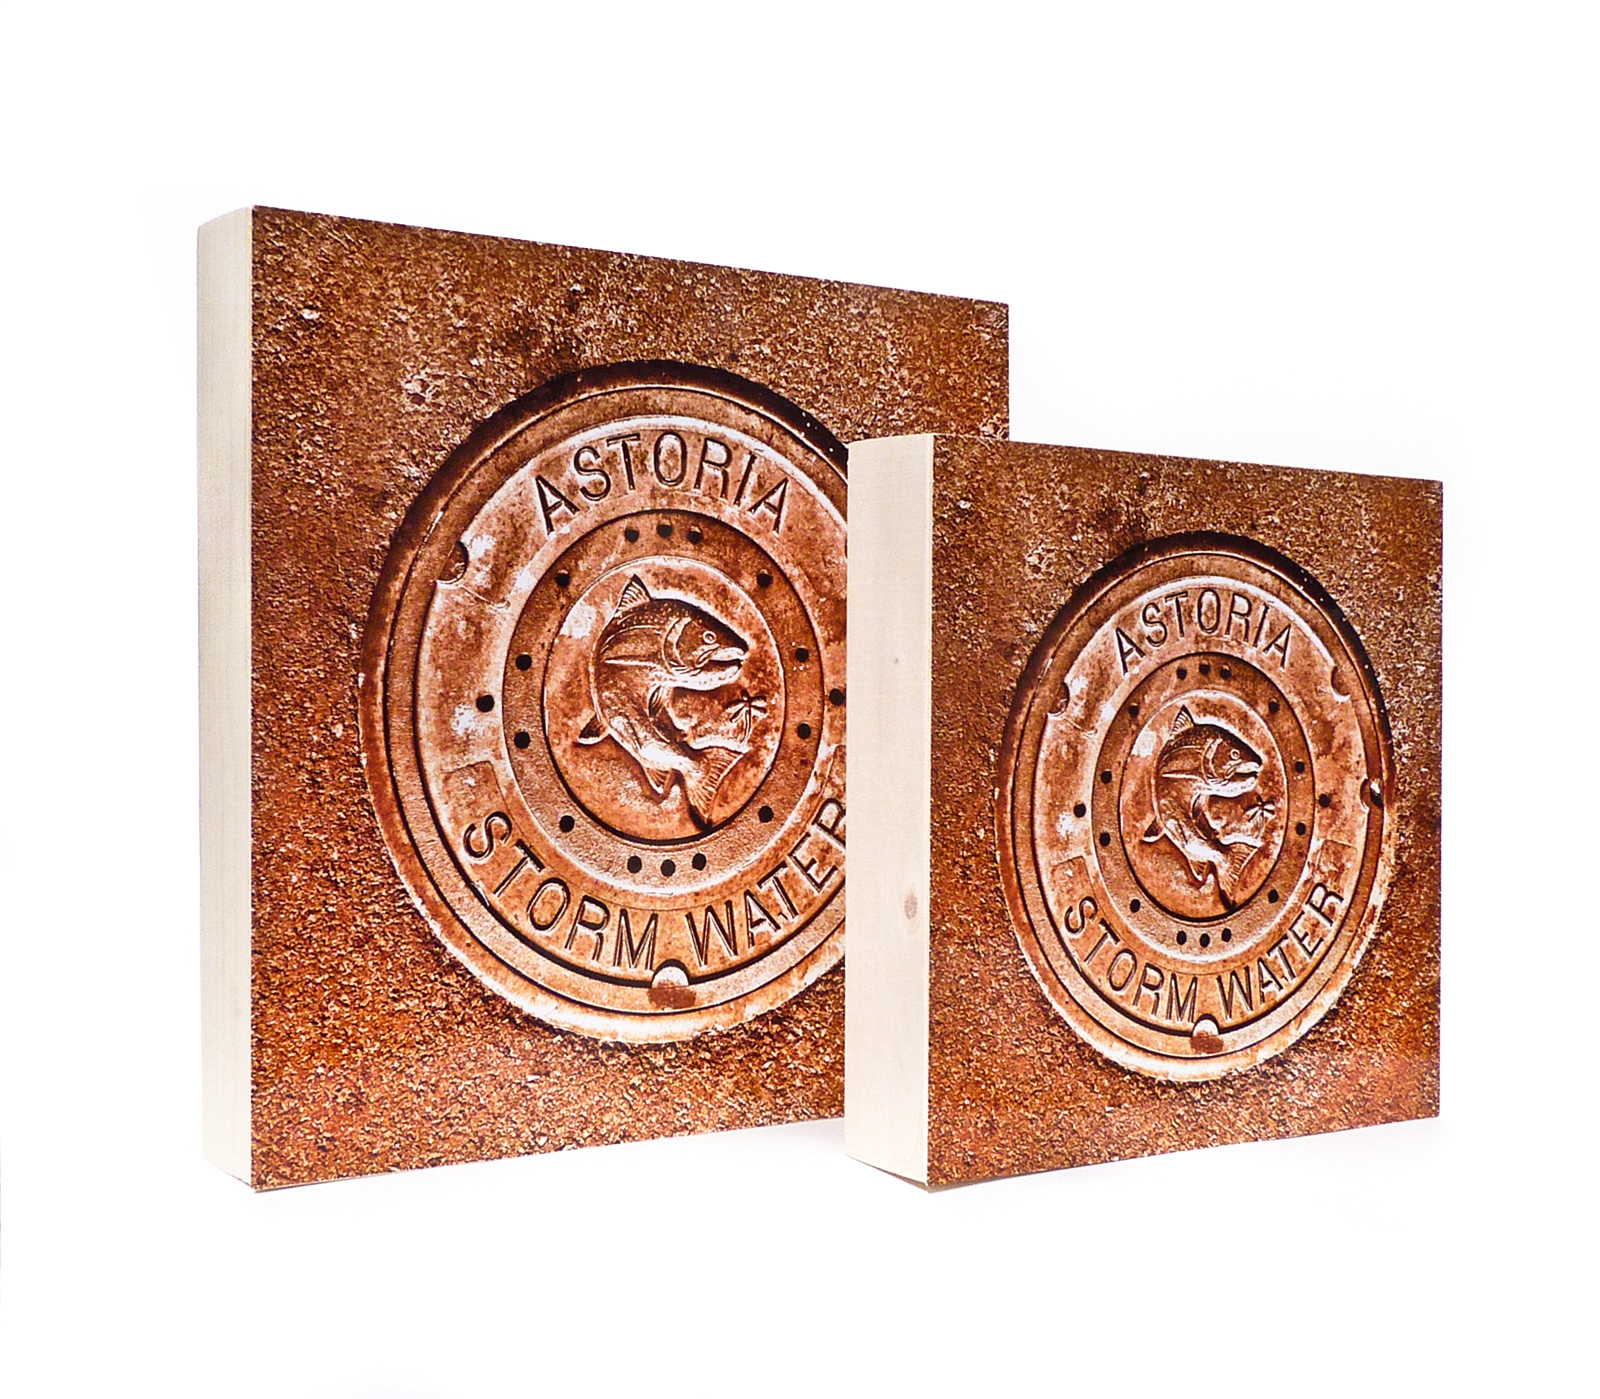 astoria-storm-drain-panel-sizes-bronze-web.jpg